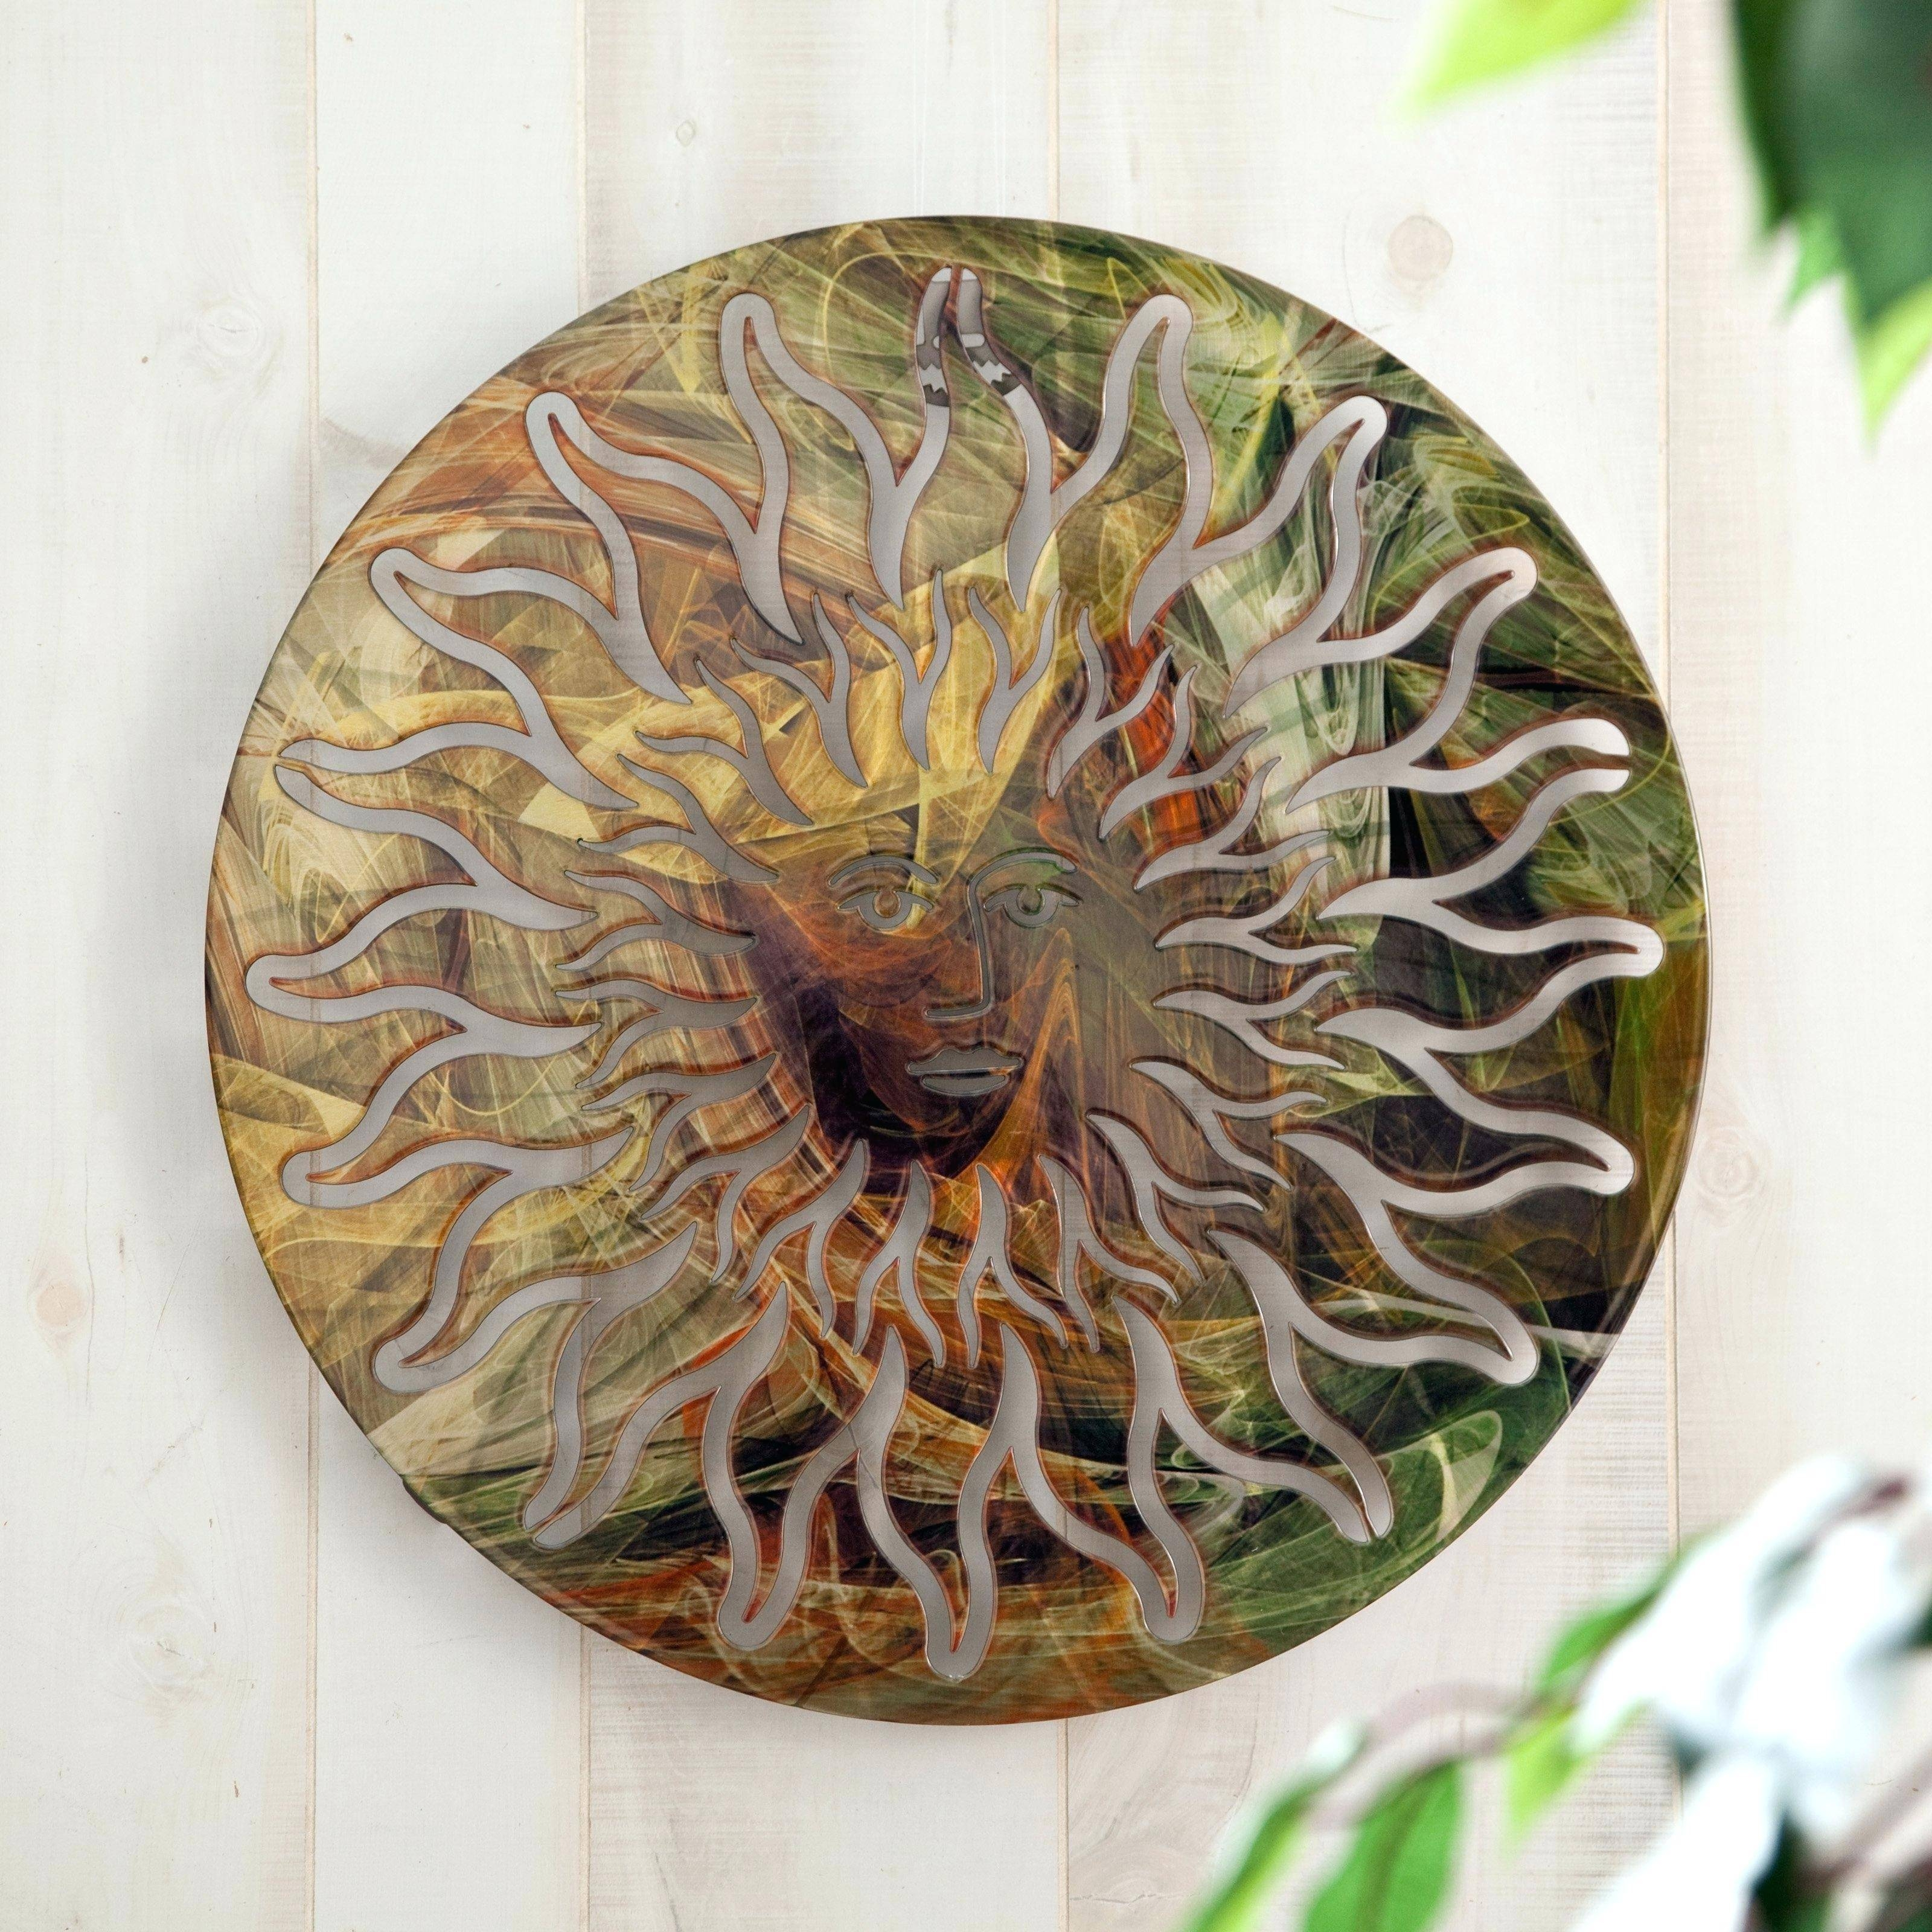 Wall Decor : Awesome Best 25 Outdoor Wall Art Ideas On Pinterest Throughout Most Current 3d Garden Wall Art (View 10 of 20)